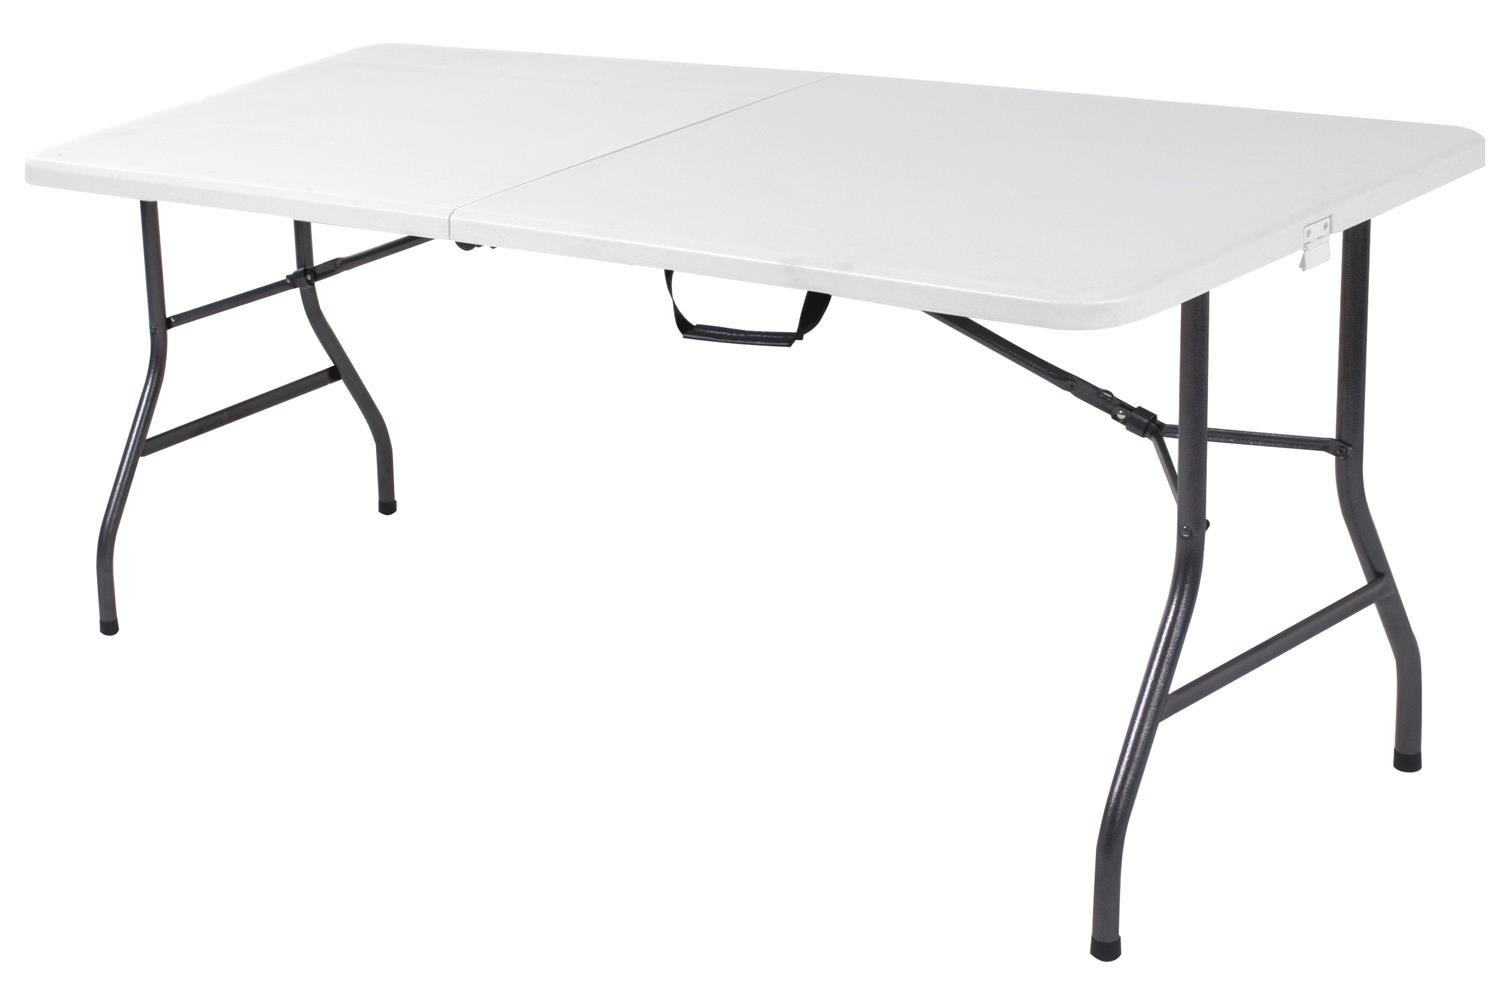 Amazon Com Cosco Deluxe 6 Foot X 30 Inch Fold In Half Blow Molded Folding Table White Speckle Kitchen Dining